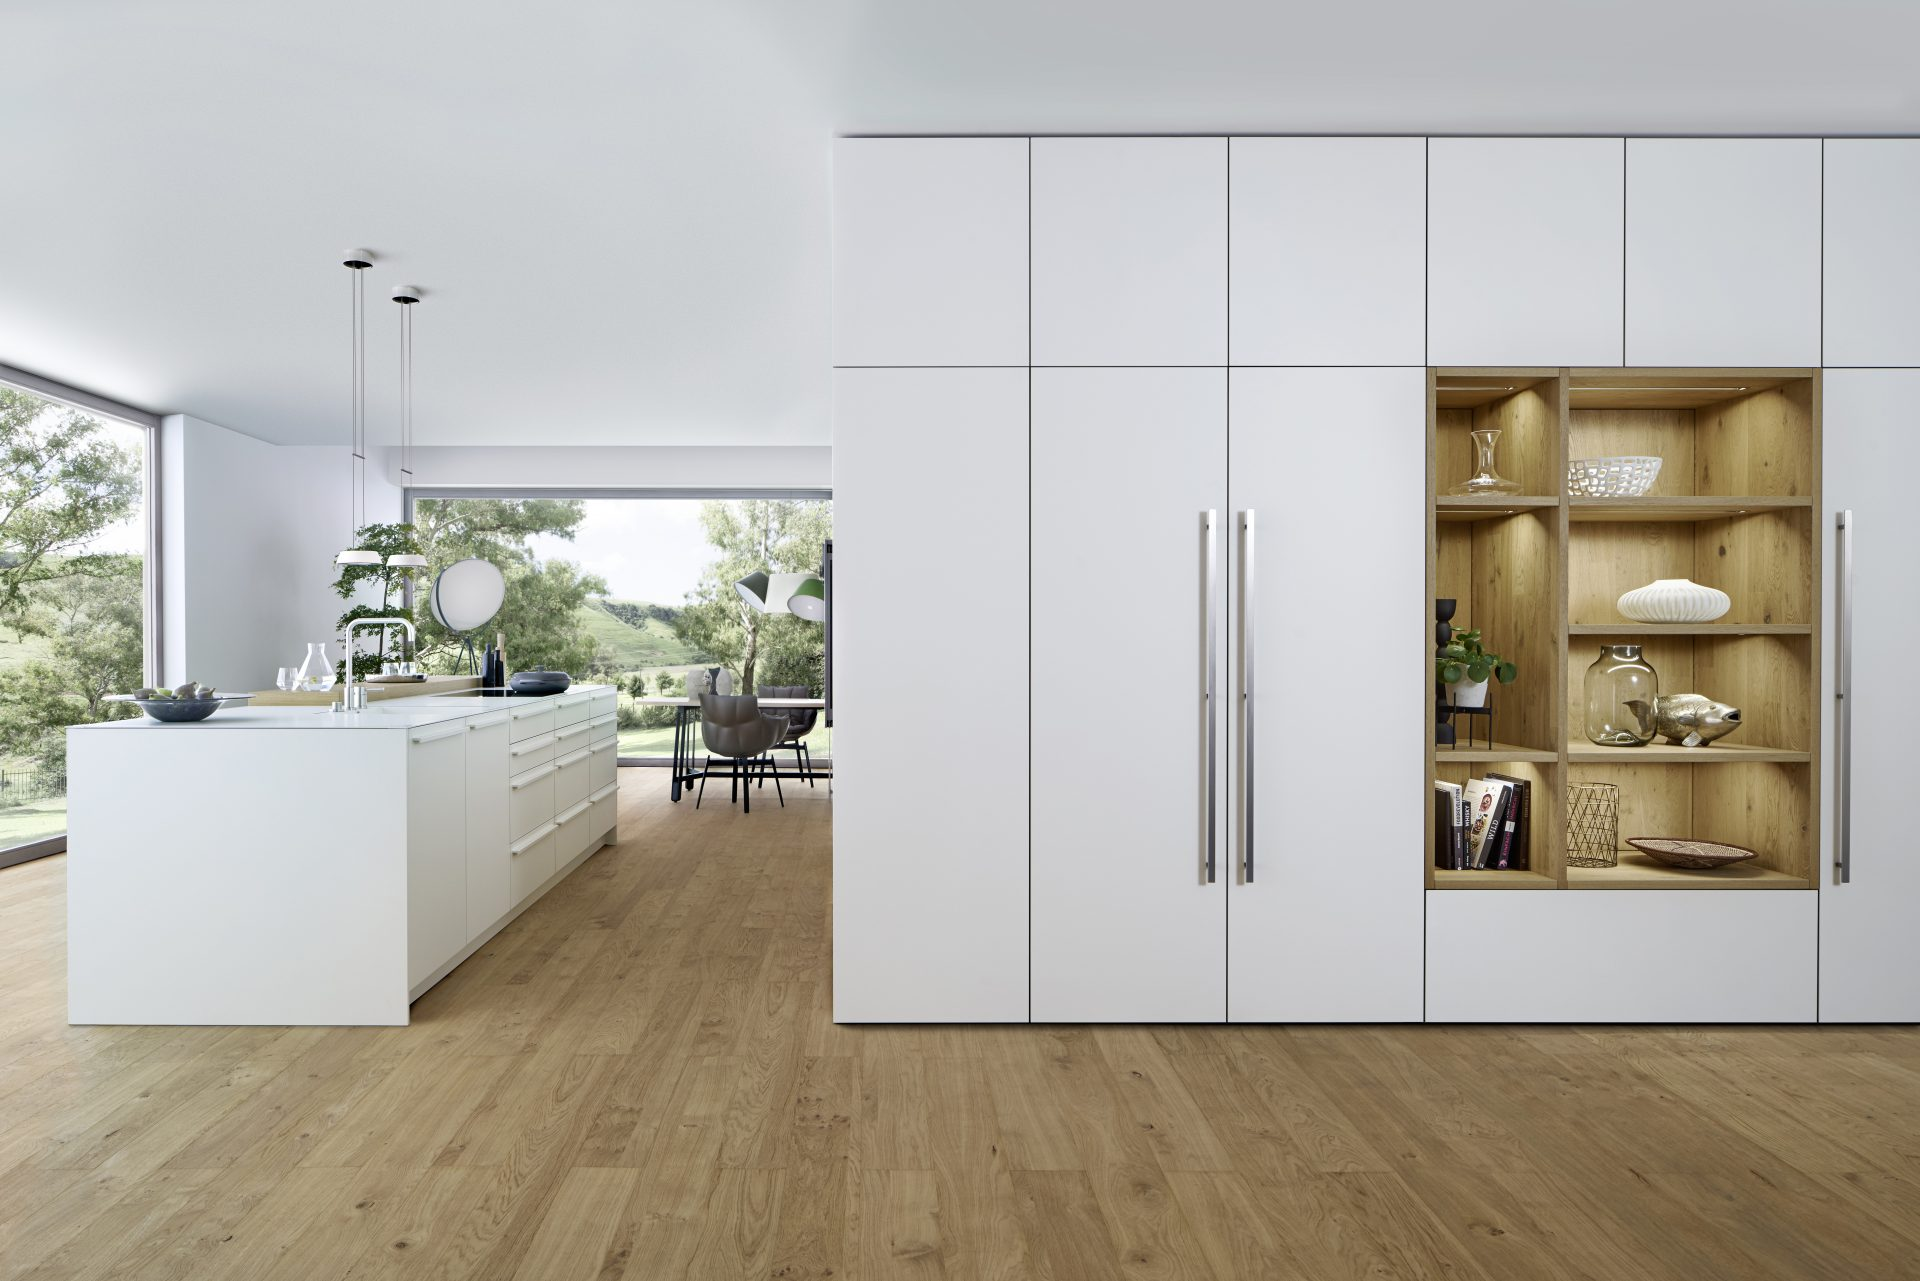 This stunning open plan kitchen by German supplier, Leicht features their BONDI-E matt lacquered doors in 'Frosty White', paired with XYLO 'Antique oak nature' range.